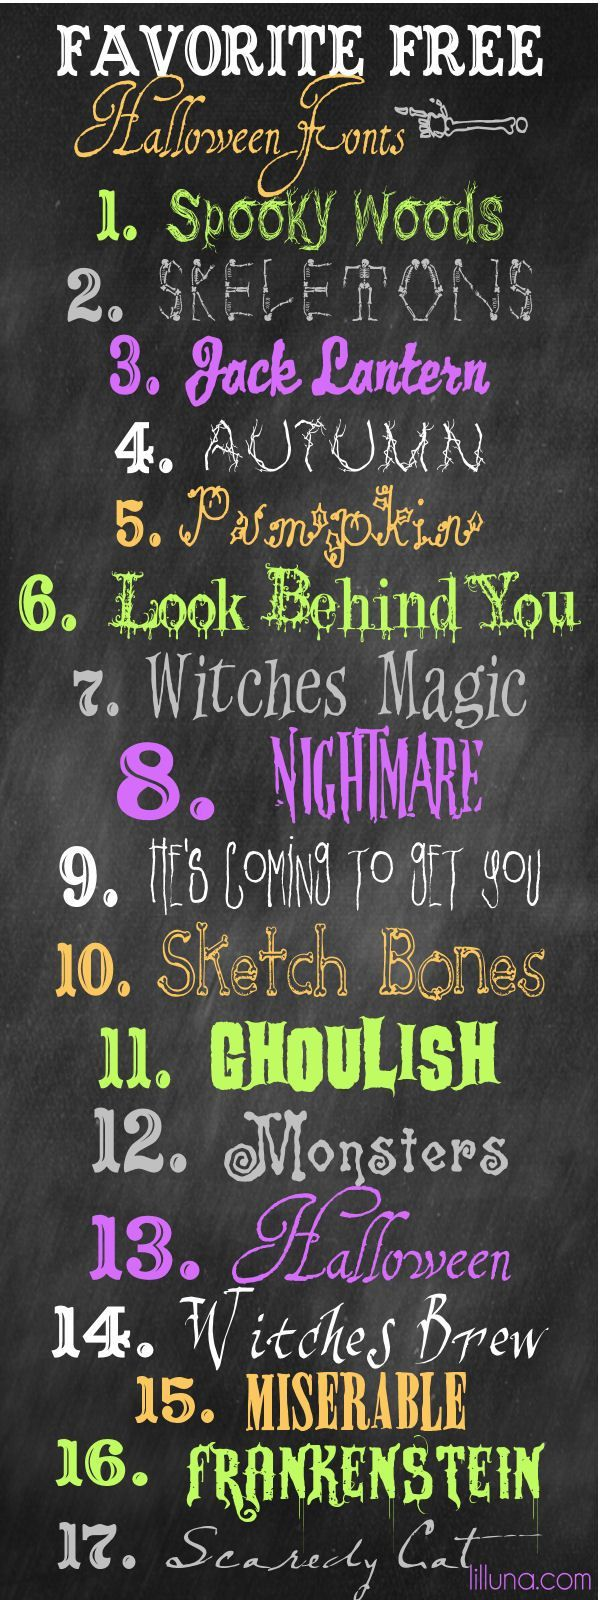 ALL are free - watch #11 Ghoulish - DON'T CLICK any of the GREEN Download Buttons - click the download button right under the font.  Favorite Free Halloween Fonts on { http://lilluna.com }